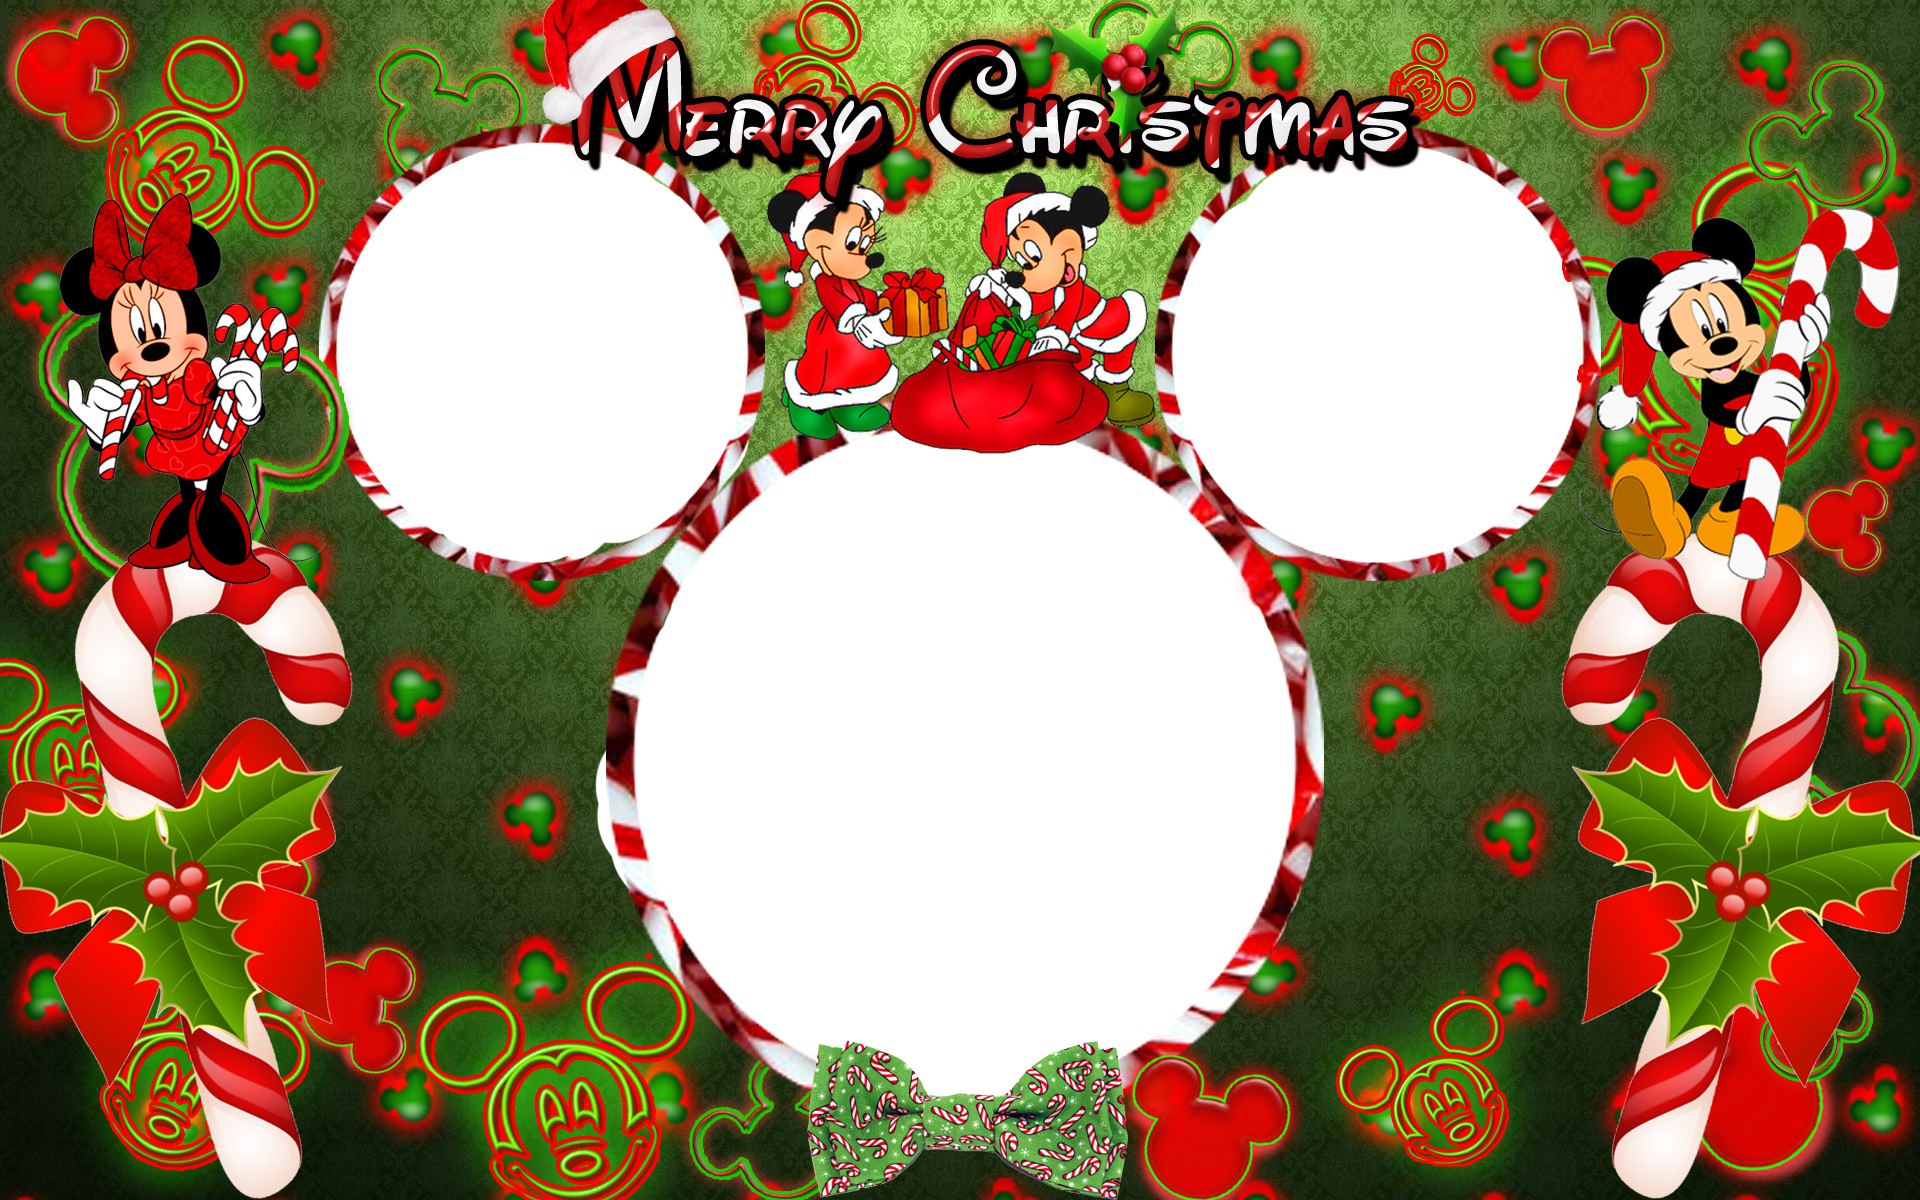 1104x2048 Background Lights Christmas Backgrounds Tumblr Iphone U Happy Holidays Disney Phone Wallpaper Wallpapers